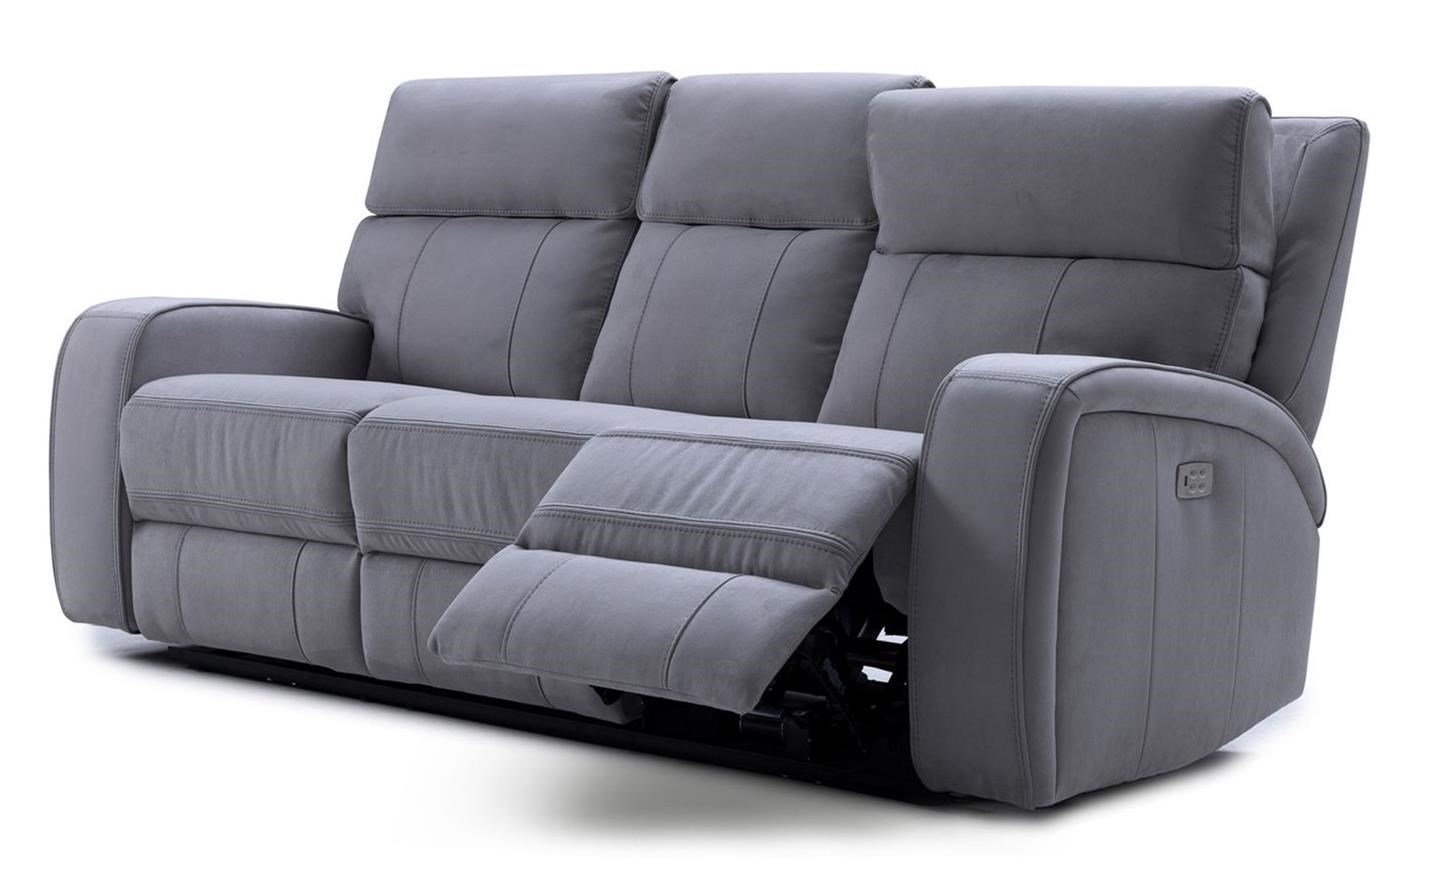 KM132 Power Recline Sofa w/ Pwr Headrest by Kuka Home at Beck's Furniture